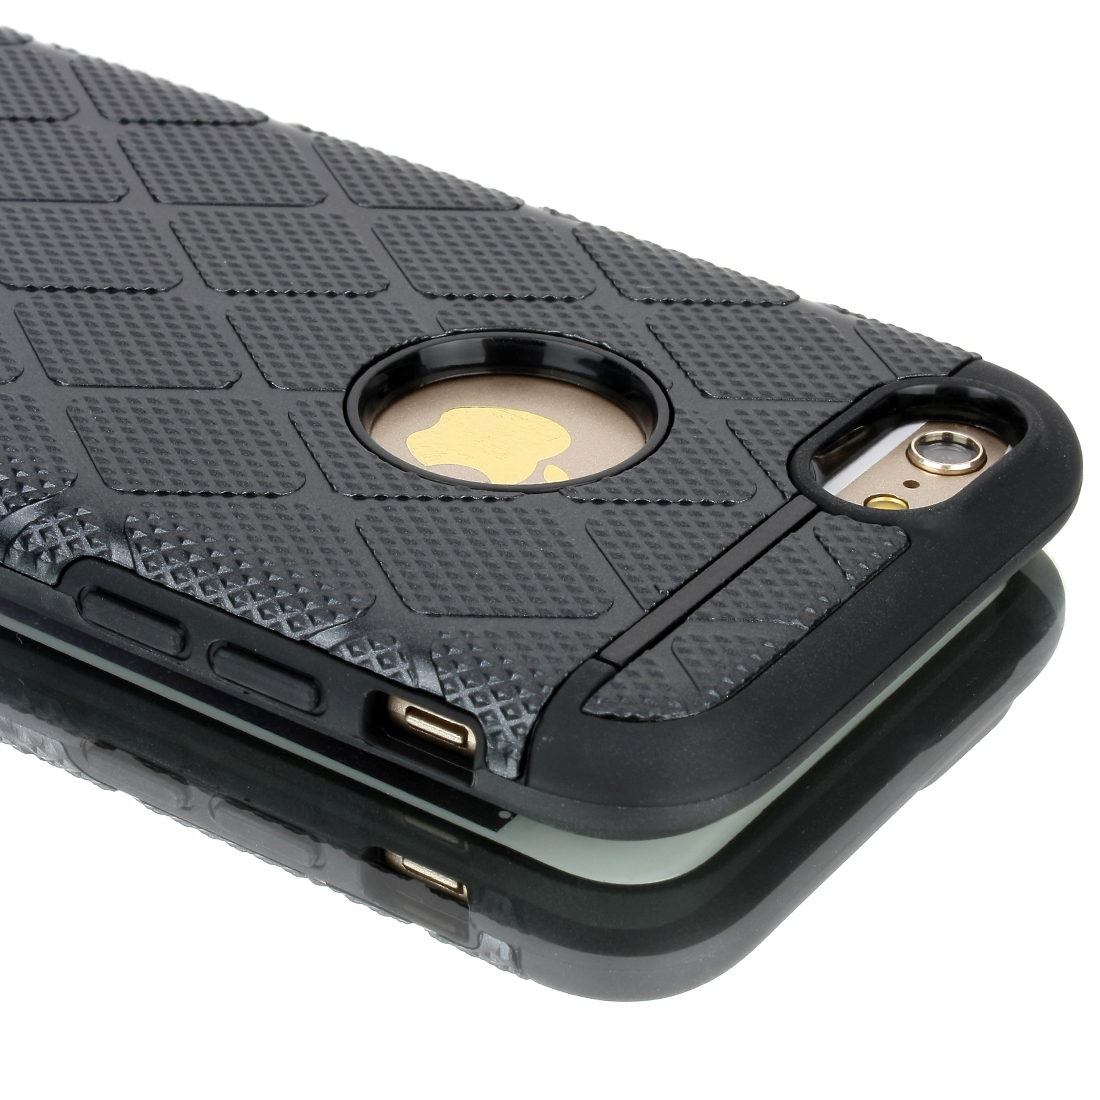 Shockproof Rugged Hybrid Rubber Hard Cover Case for Apple iPhone 6 Black